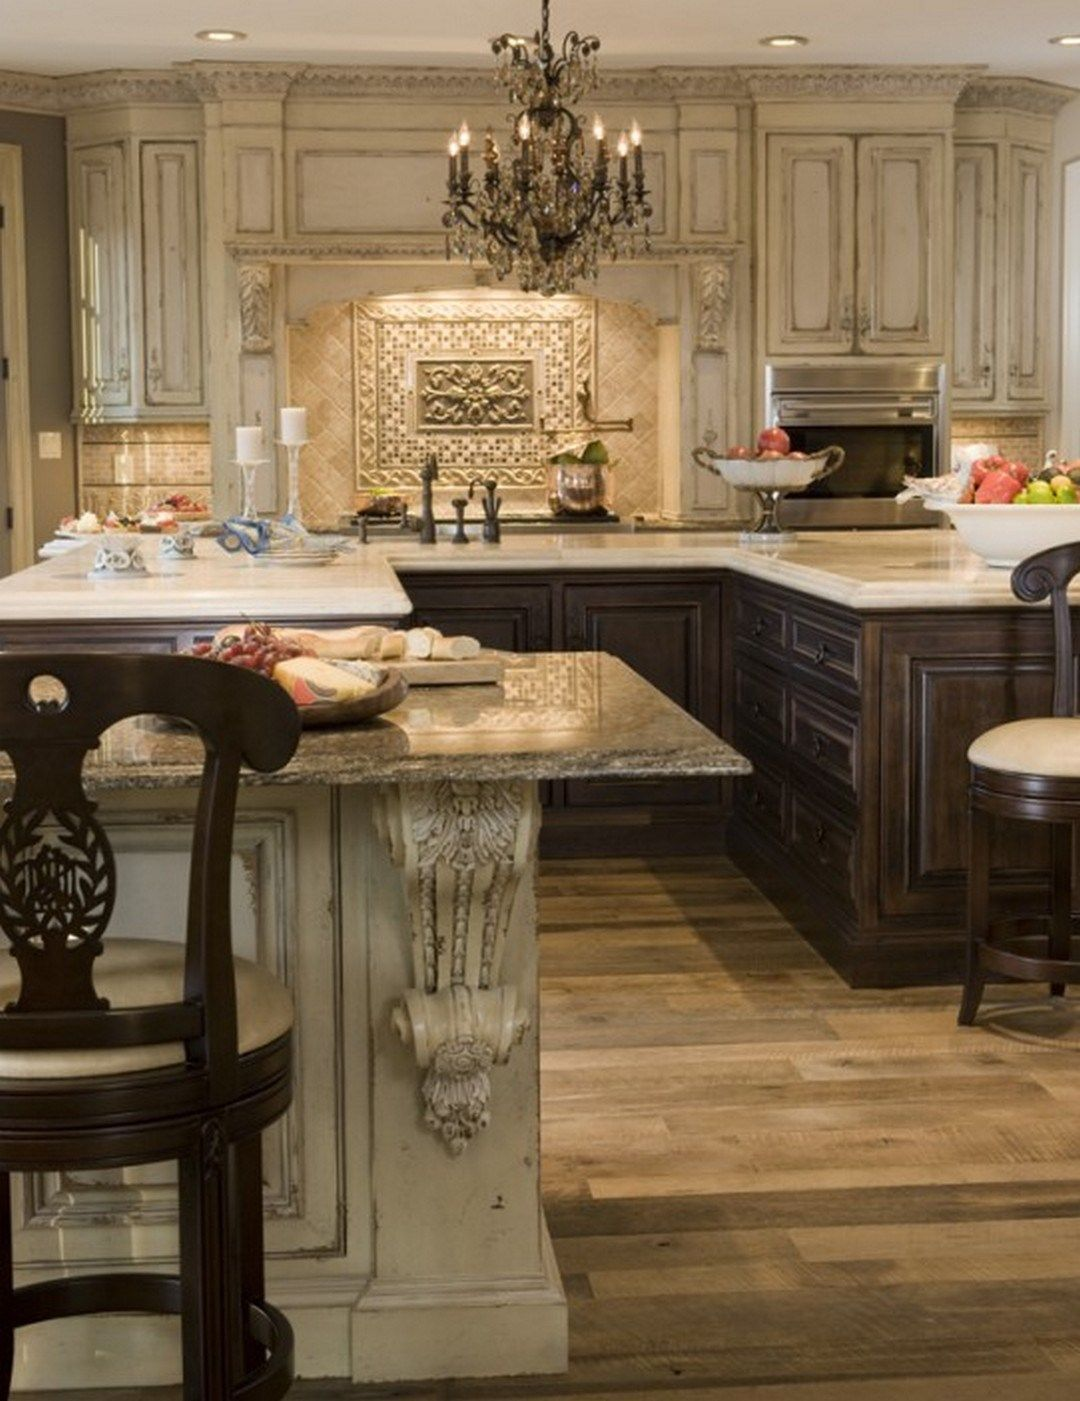 99 french country kitchen modern design ideas 52 country kitchen designs beautiful kitchens on kitchen remodel french country id=78363